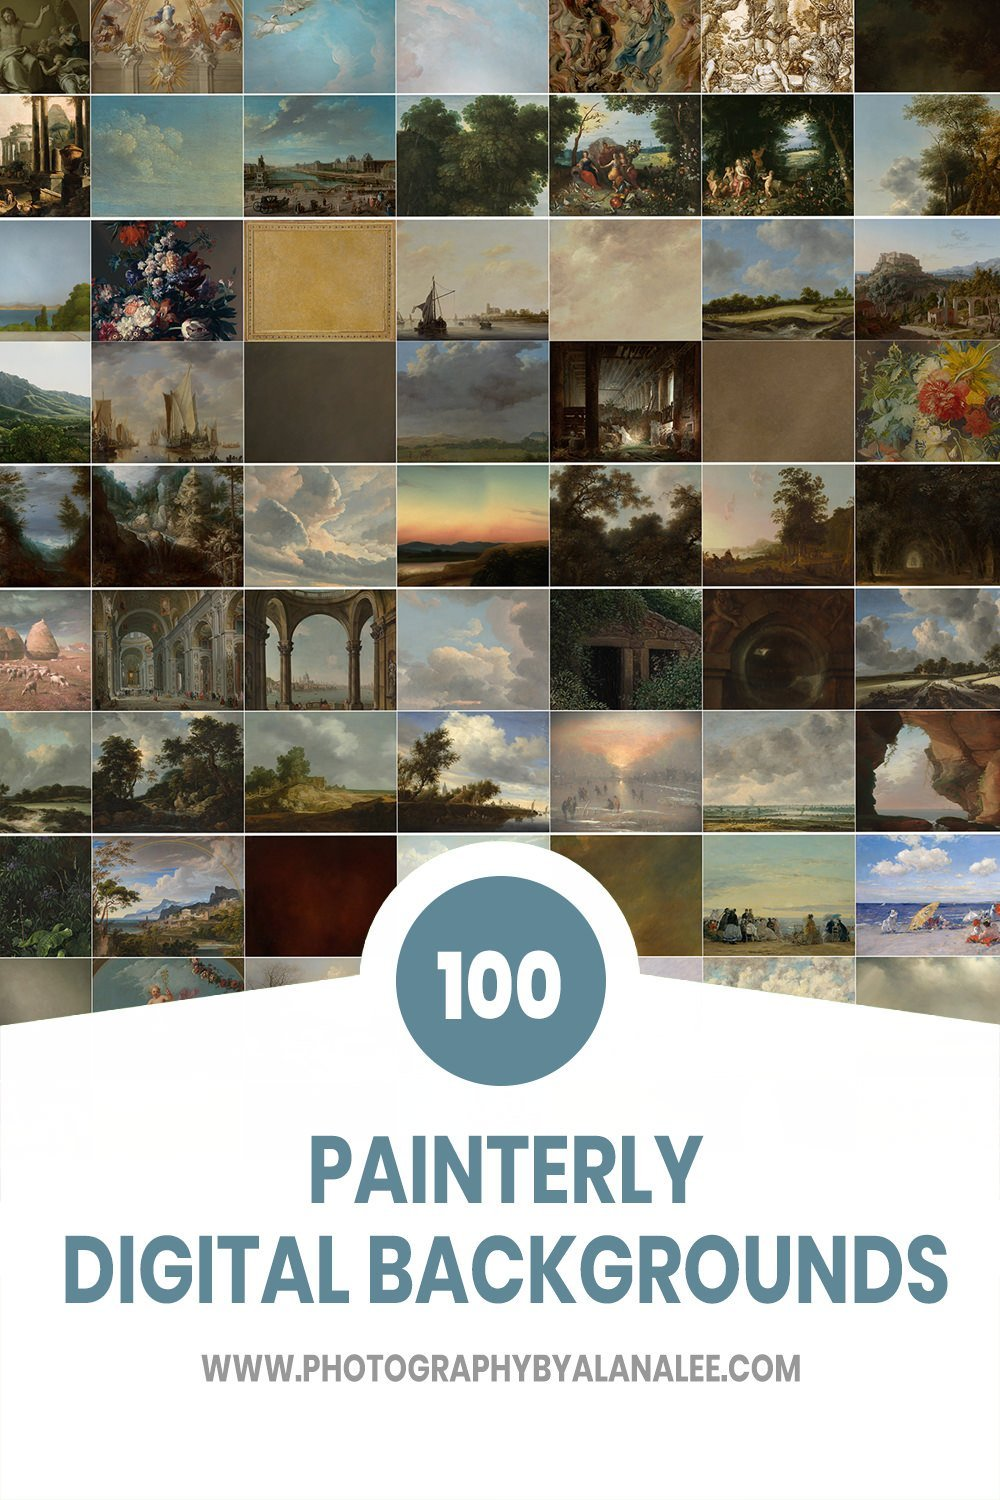 100 painterly style digital backdrops for photography